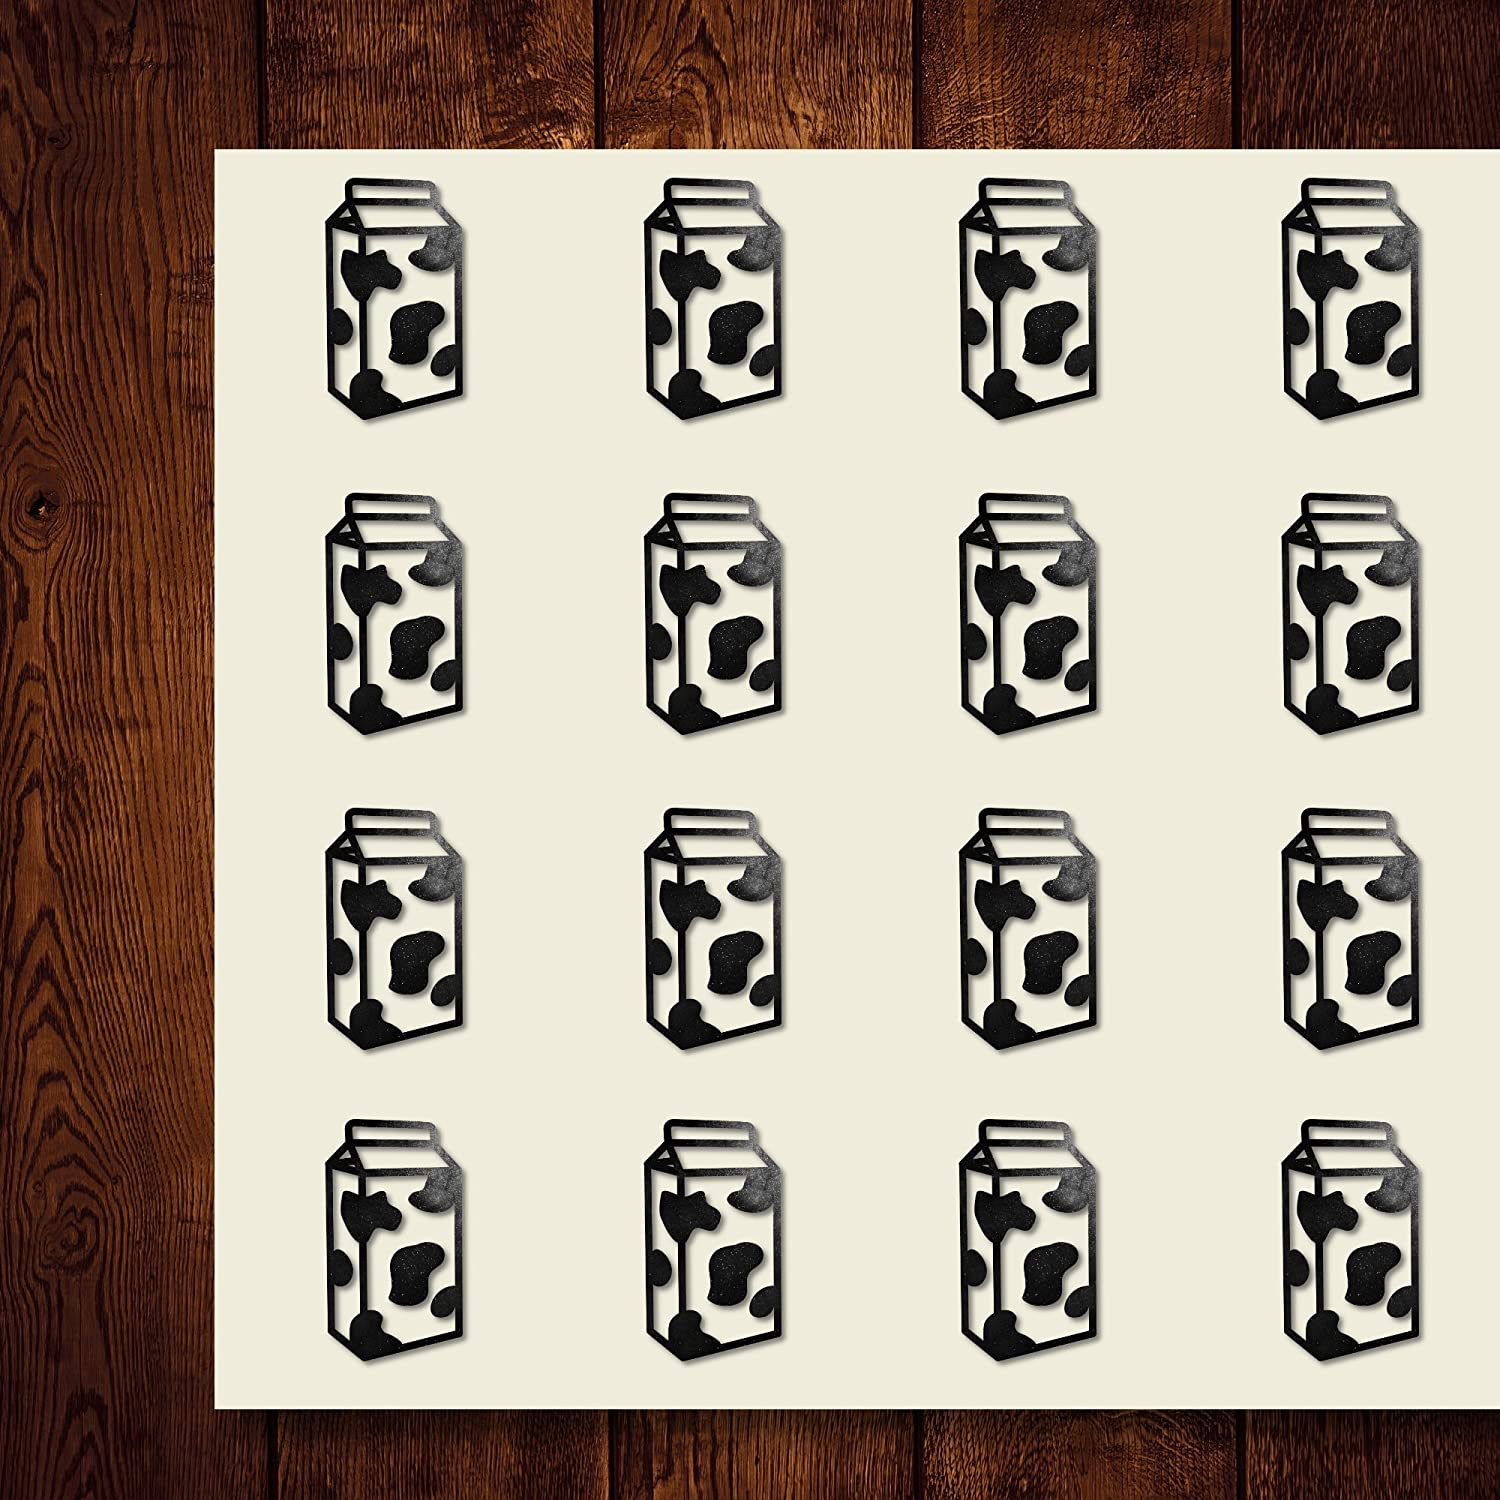 Milk Beverage Drink Dairy Carton Craft Stickers, 30 Stickers at 1.5 inches, Great Shapes for Scrapbook, Party, Seals, DIY Projects, Item 247146